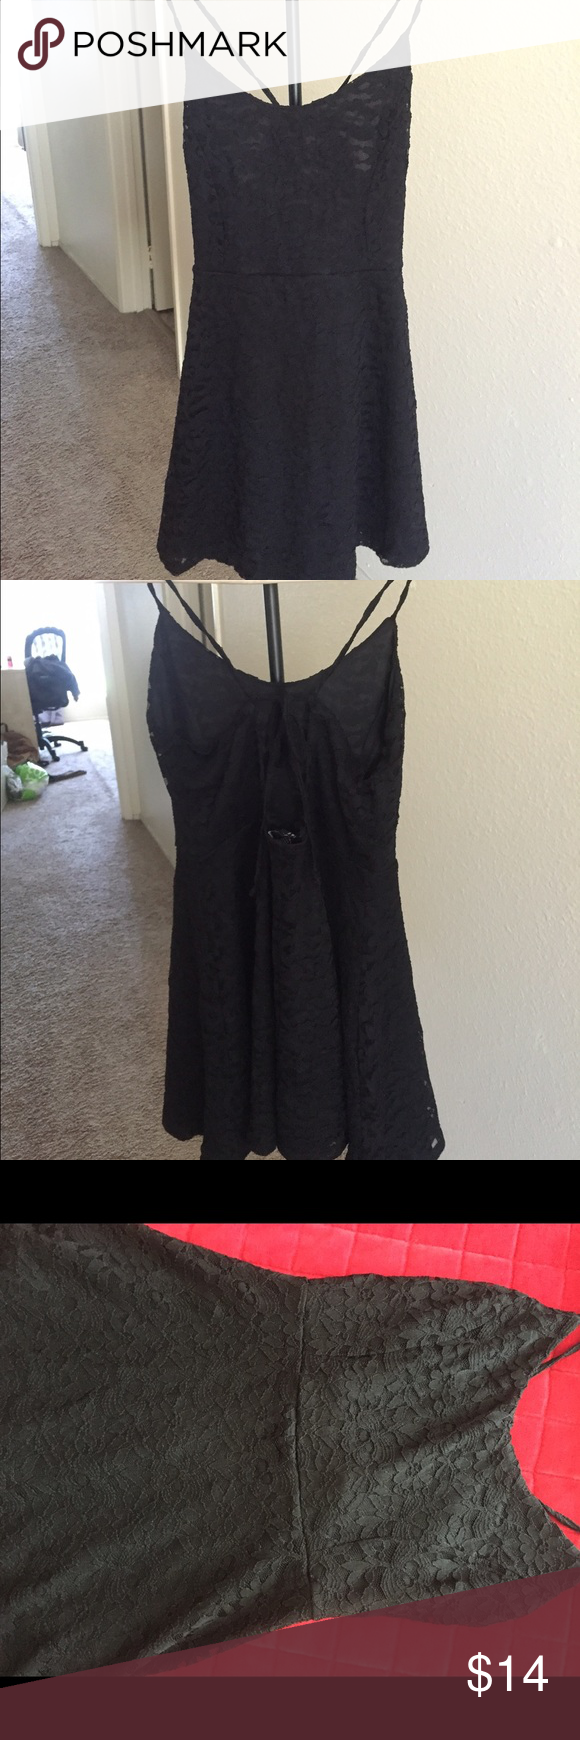 "Little black dress from forever 21! NEVER WORN! 100% new, cut off the tags so can't be returned! Size M but fits an S (I'm 6'3"" and usually a size XS/S but it fits me perfectly) Dresses Mini"